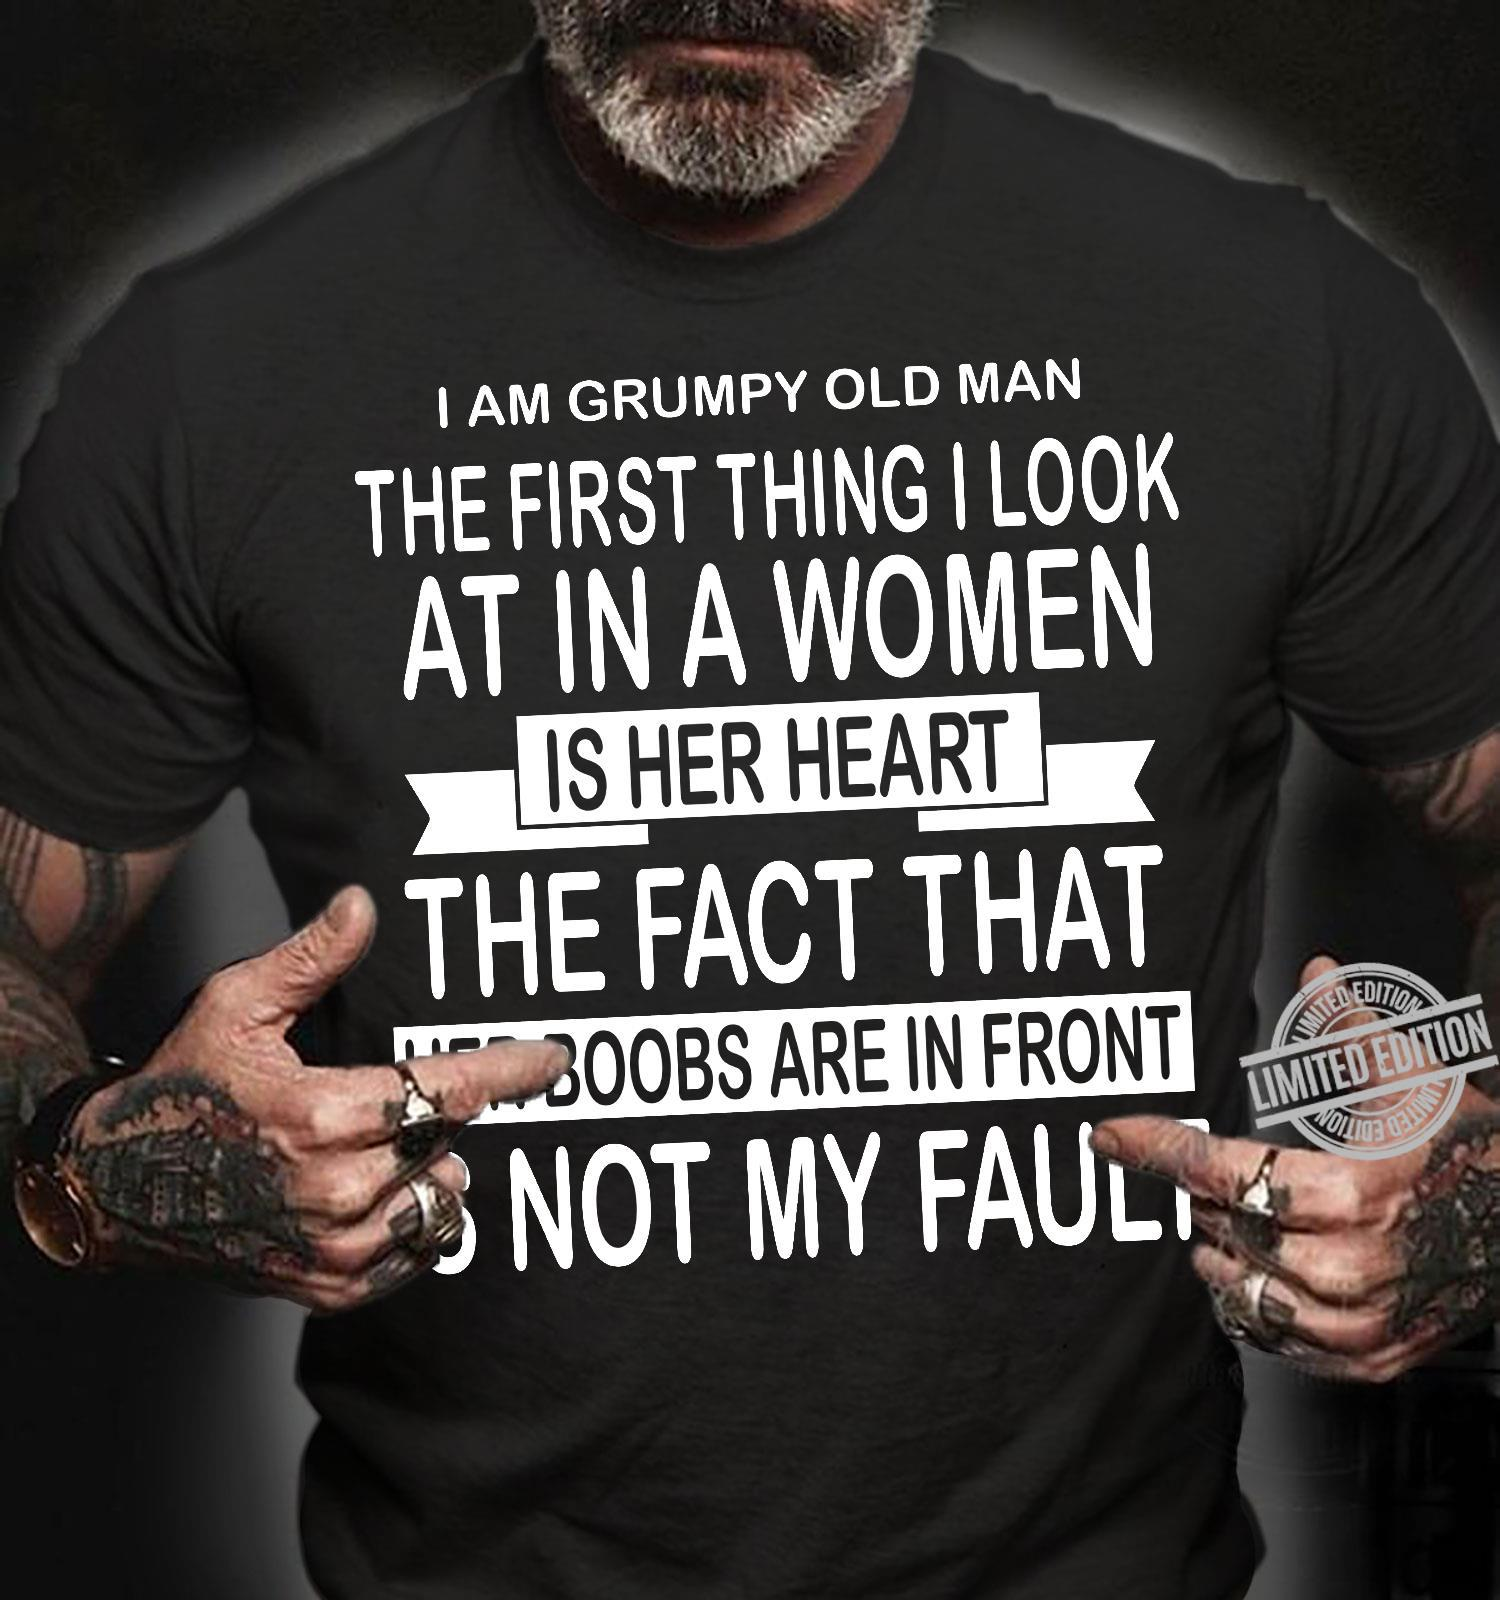 I Am Grumpy Old Man The First Thing I Look At In A Women Is Her Heart The Fact That Her Boobs Are In Front Is Not My Fault Shirt